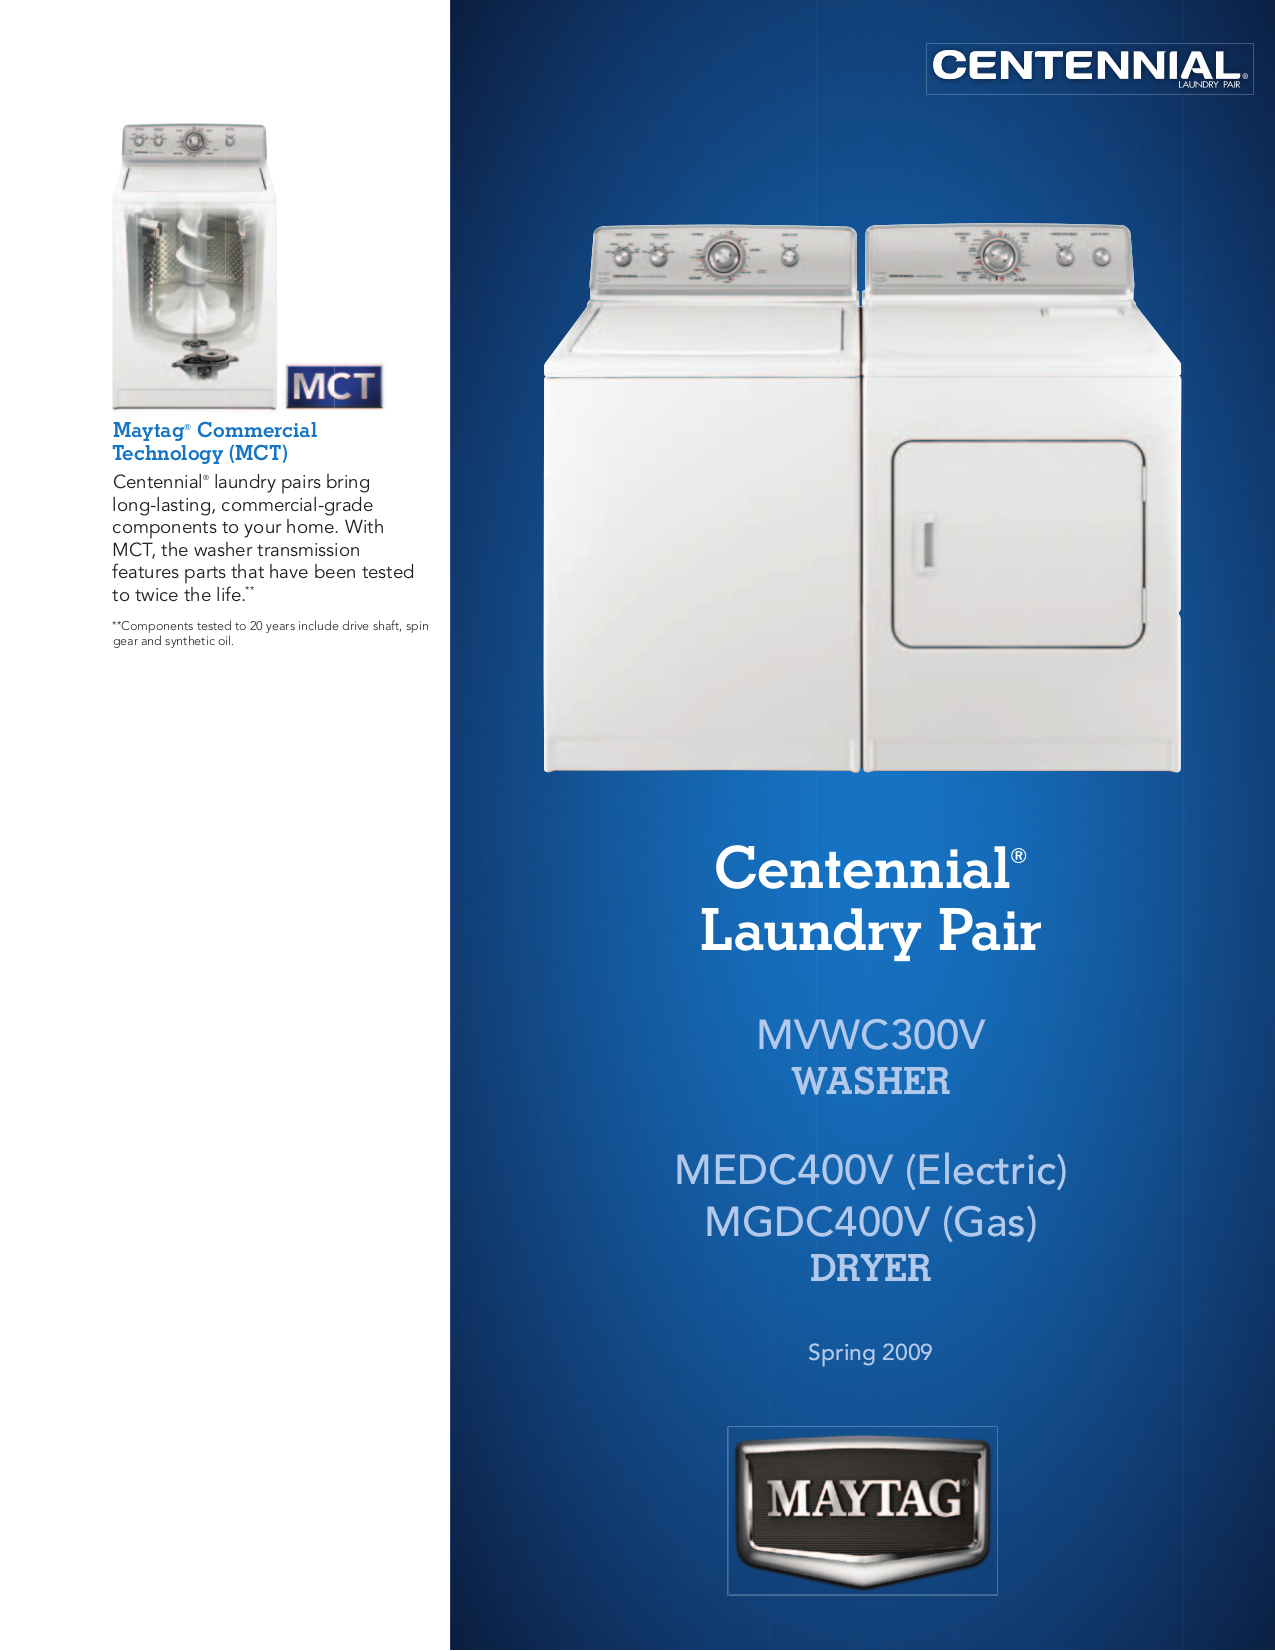 Maytag Centennial Dryer Medc200xw1 Service Manual In Pdf Whirlpool 677818l For Gas And Electric Dryers